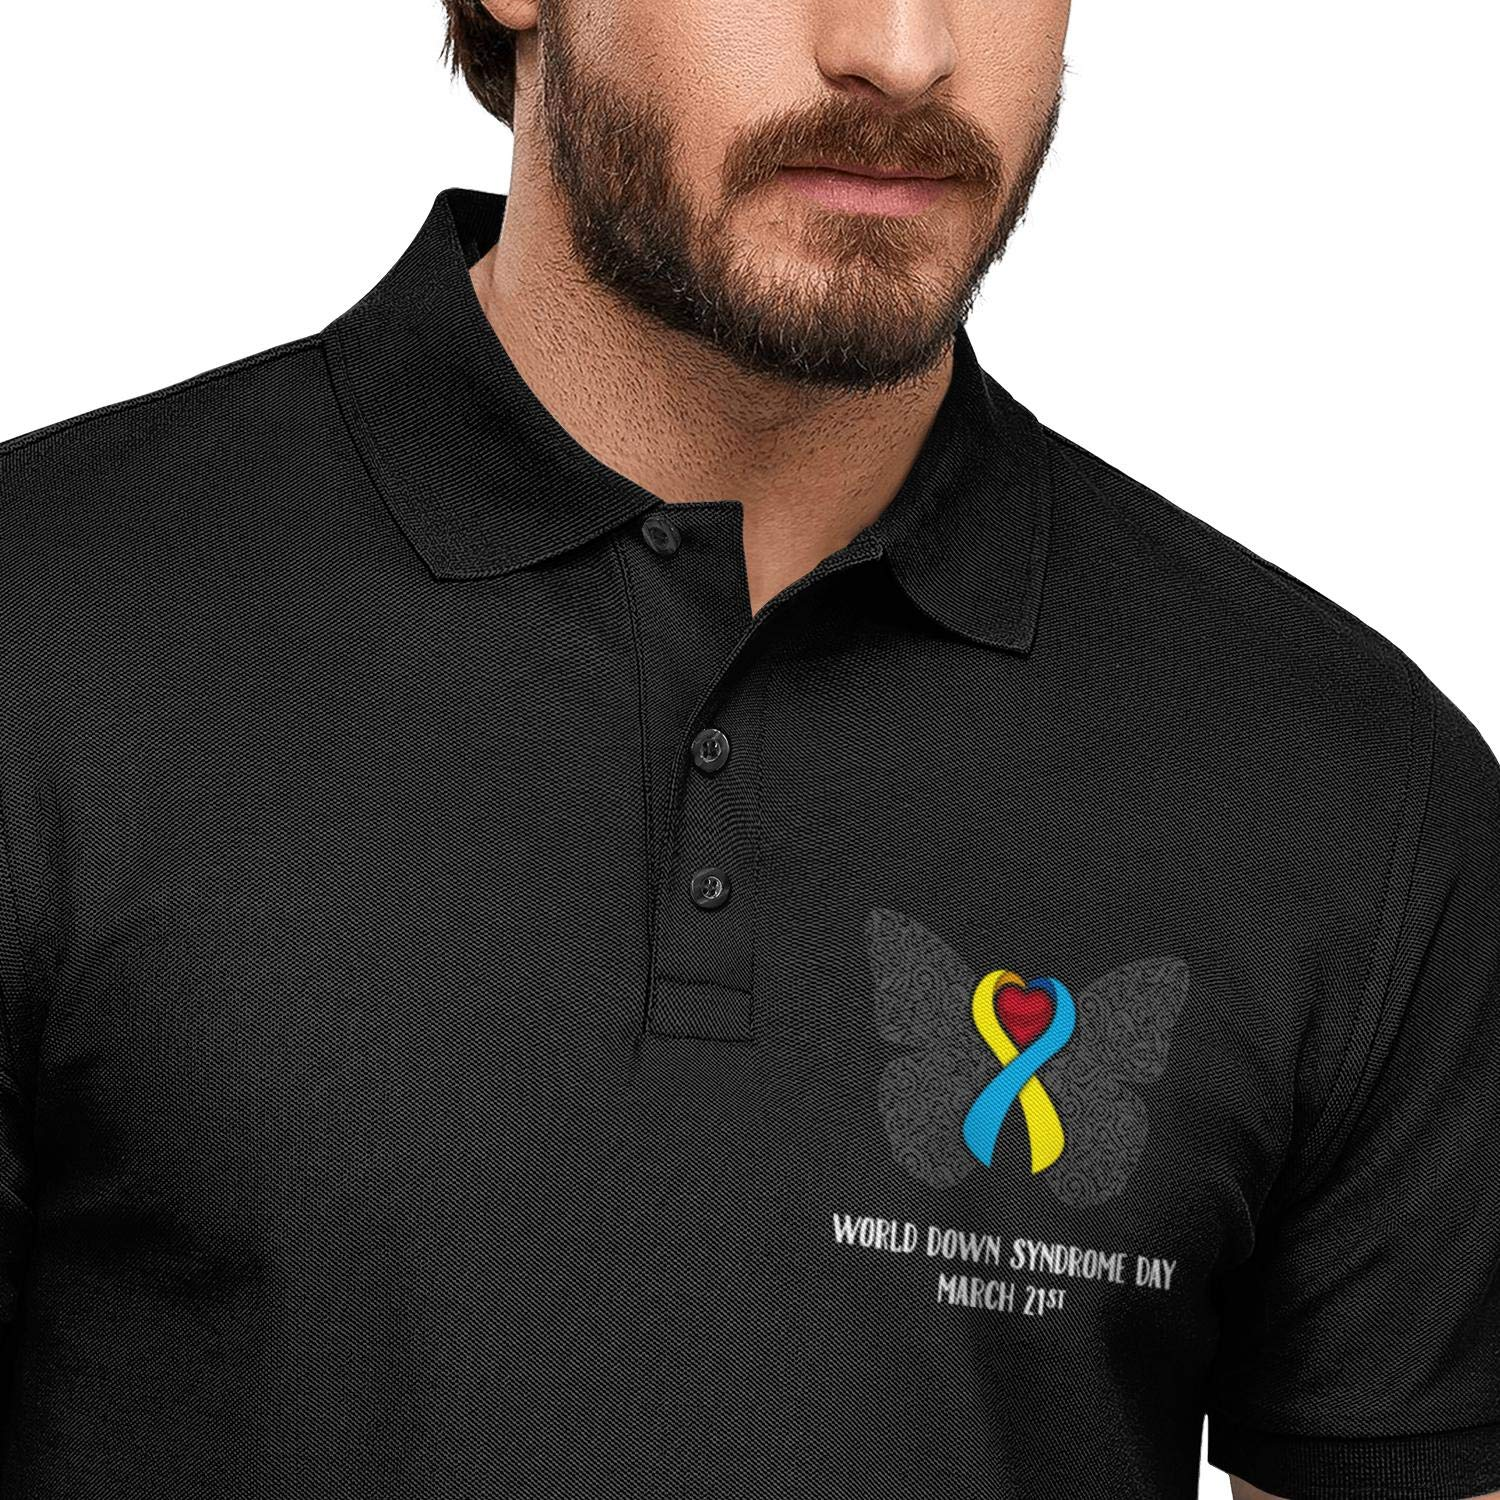 WYFEN Mens Printed Polo Shirt World Down Syndrome Day Butterfly Stylish Short Sleeve T-Shirt